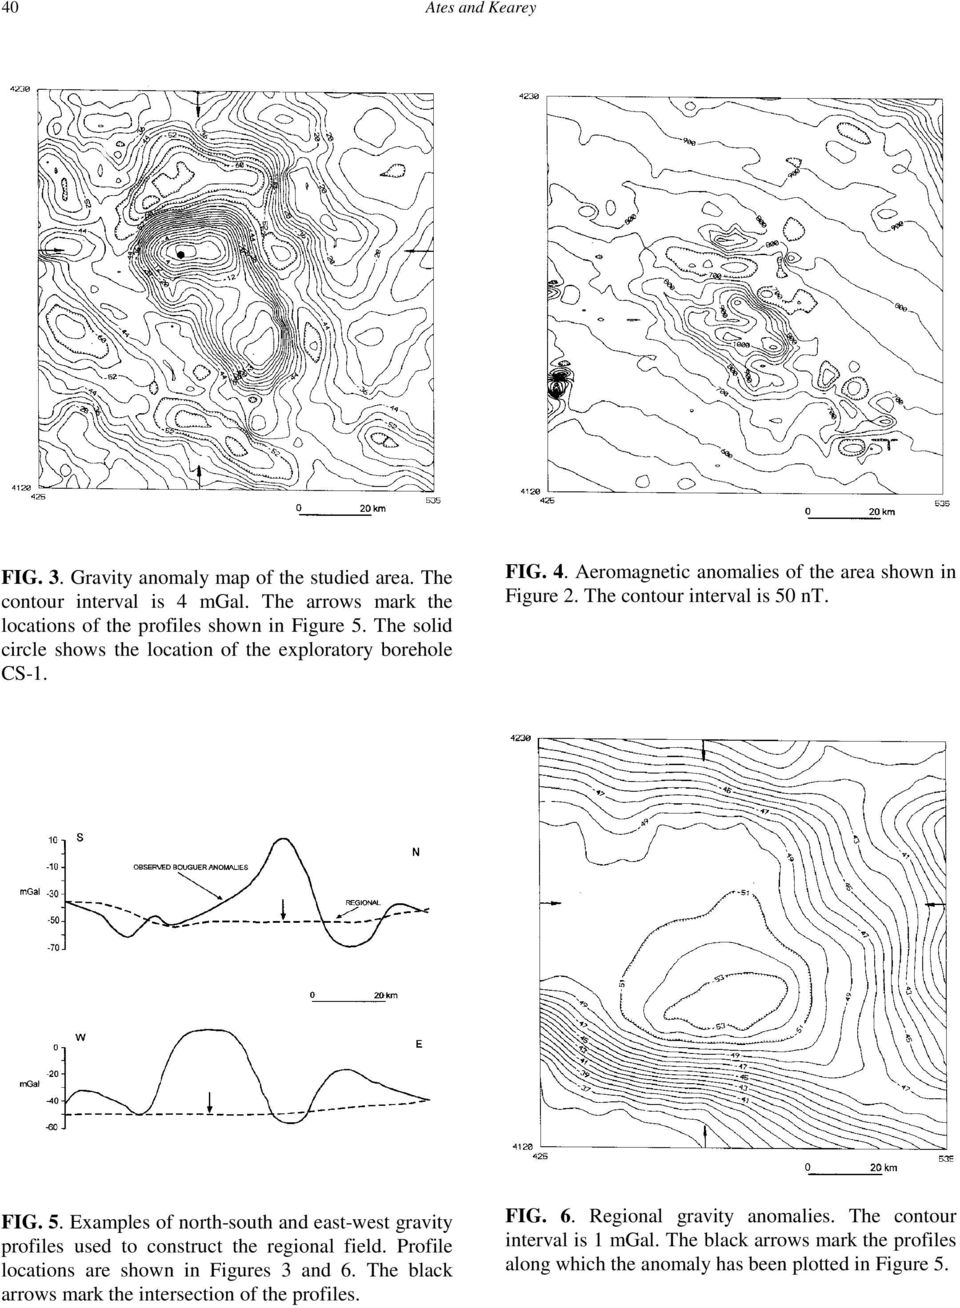 nt. FIG. 5. Examples of north-south and east-west gravity profiles used to construct the regional field. Profile locations are shown in Figures 3 and 6.